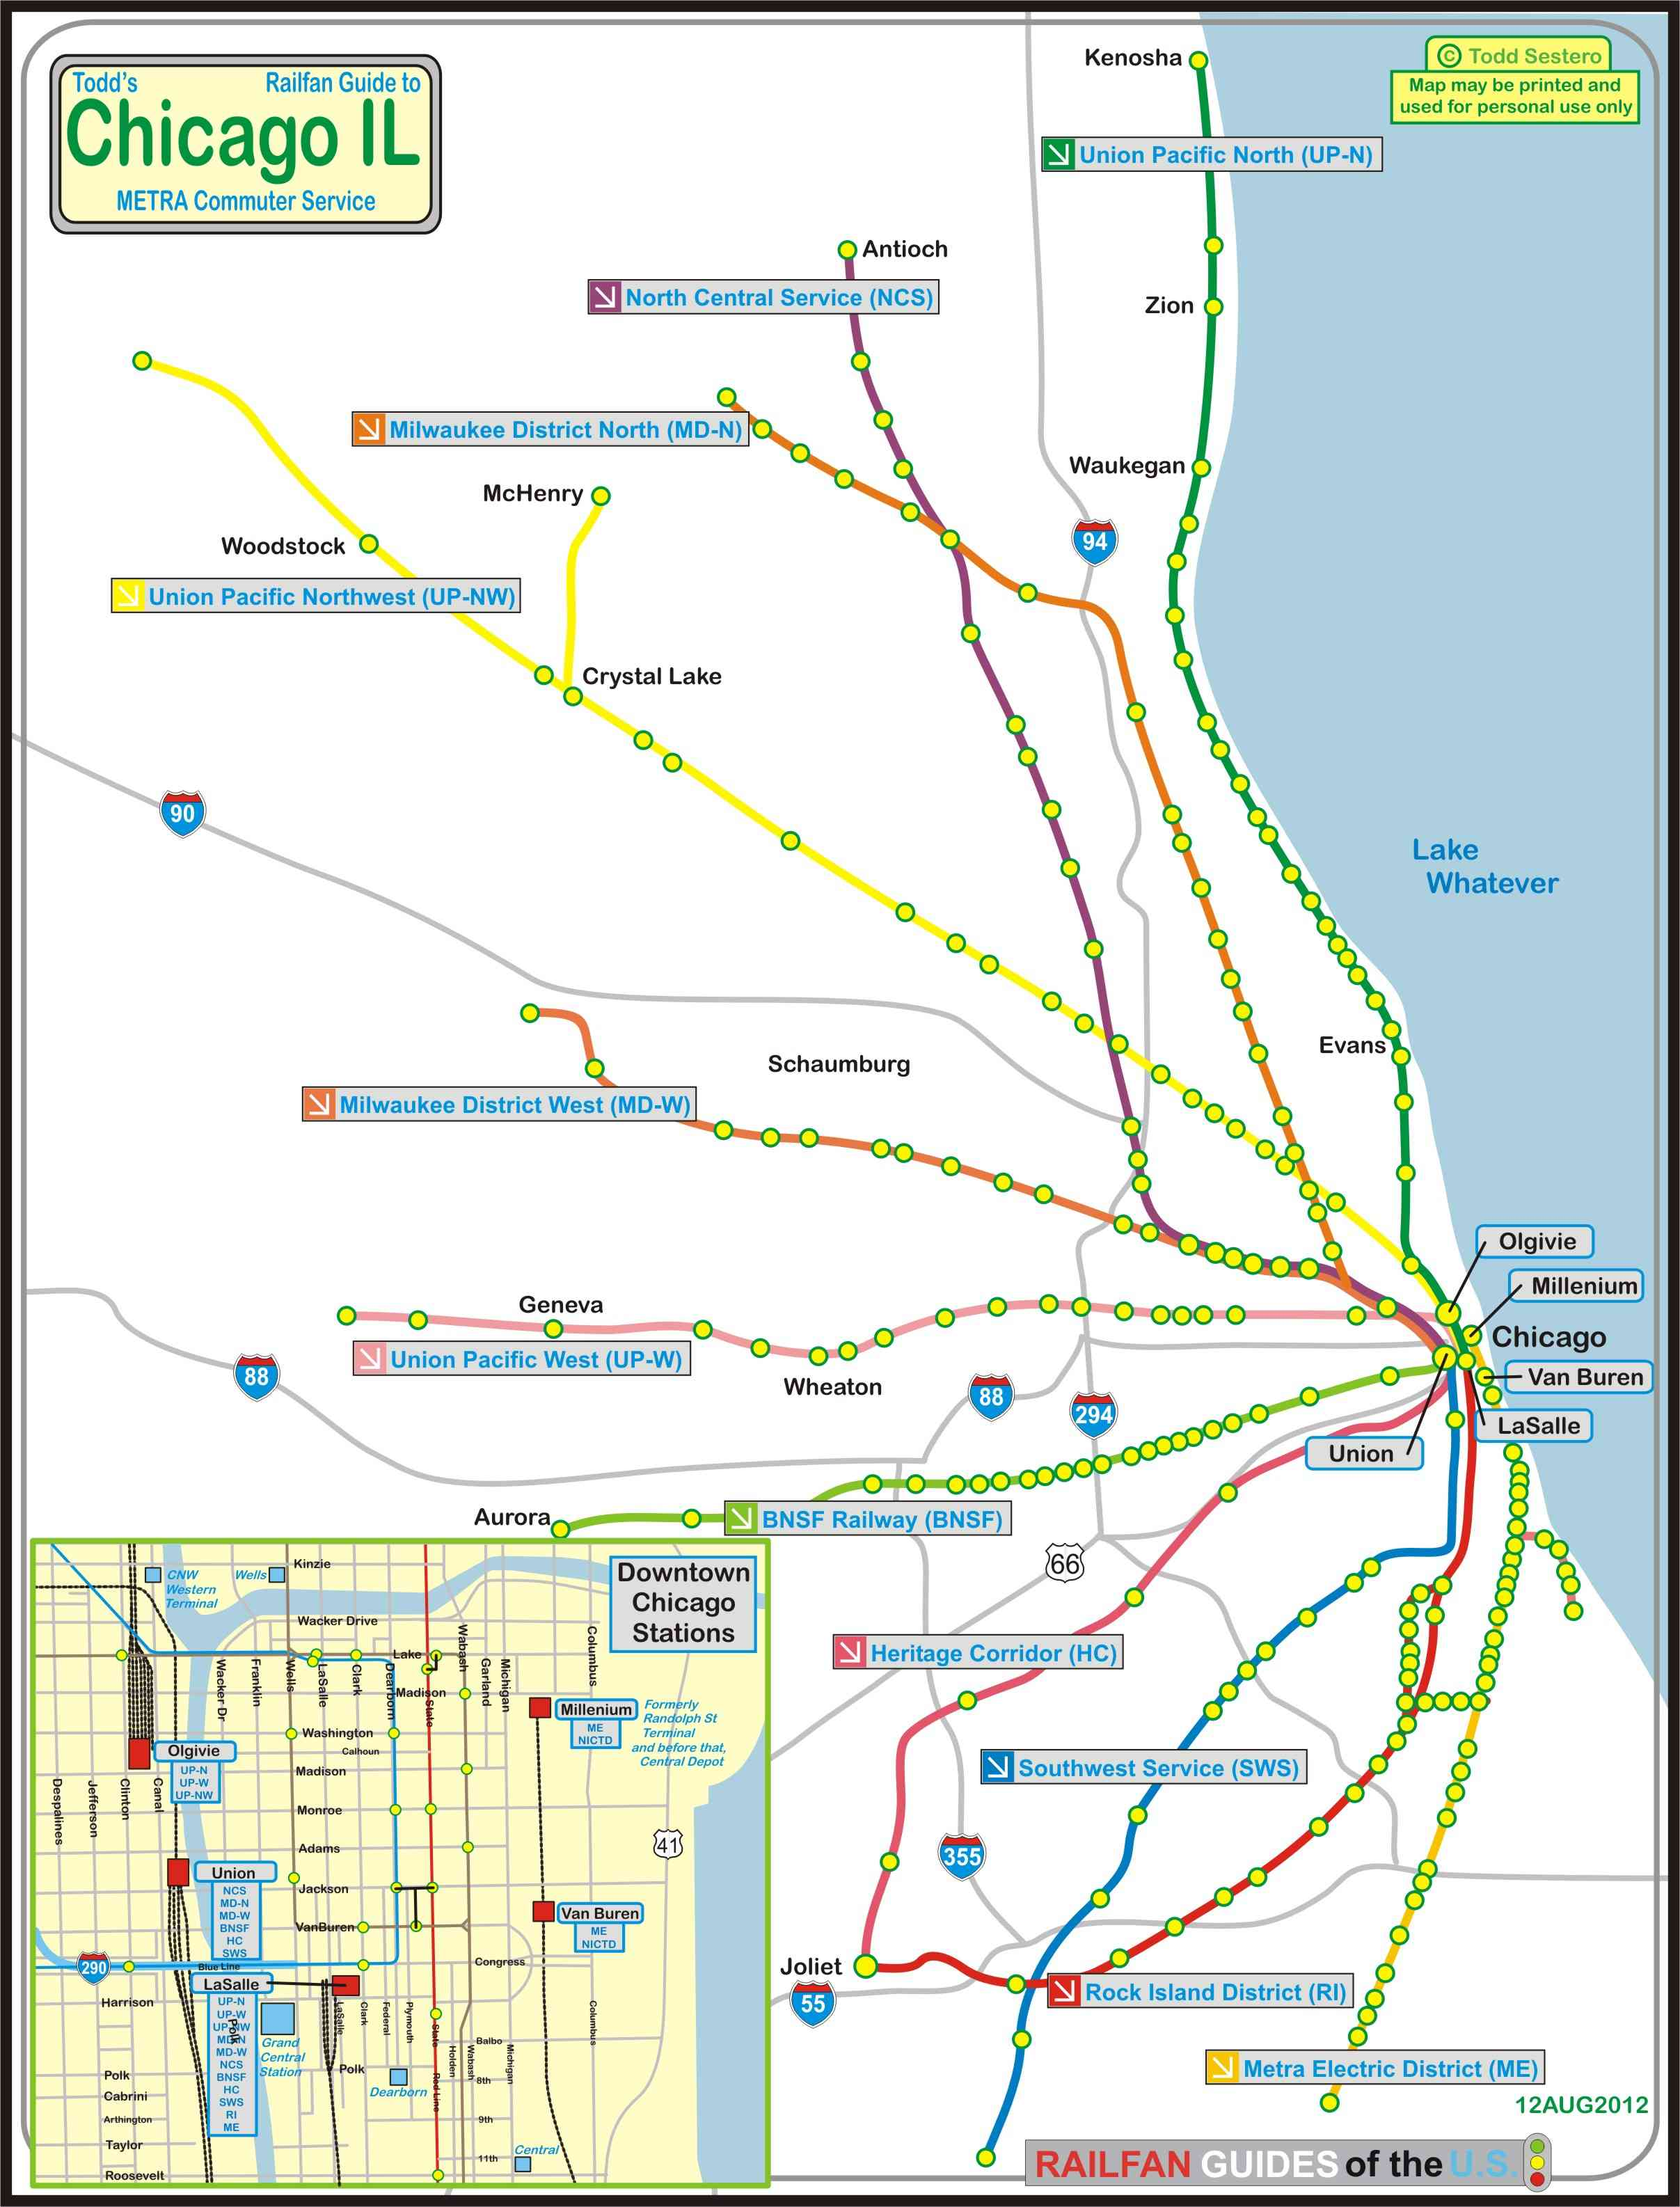 Chicago METRA Railfan Guide